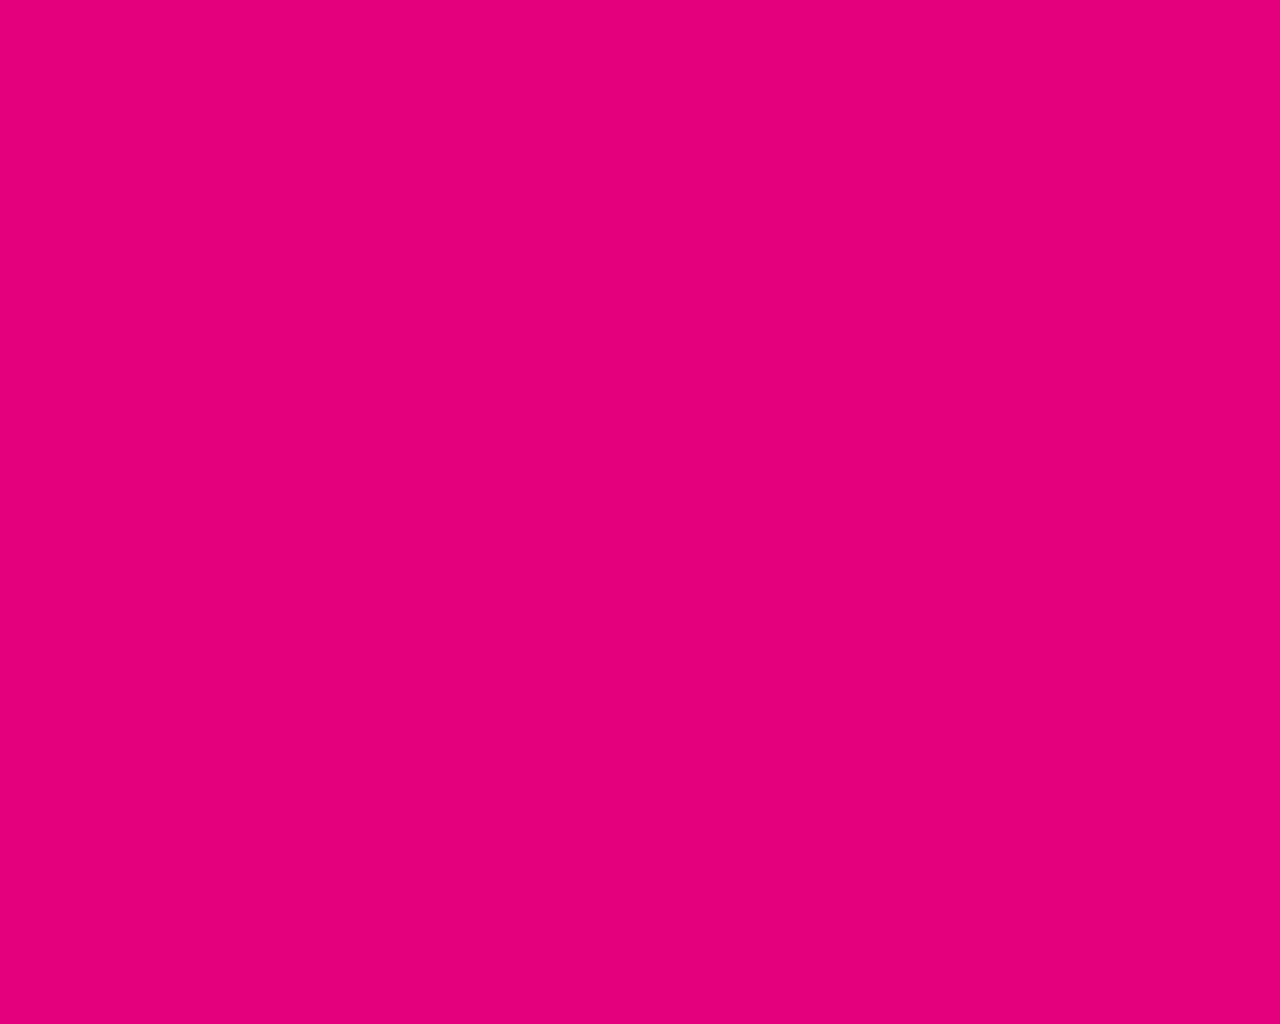 Free 1280x1024 resolution Mexican Pink solid color background  view    Mexican Colors Background